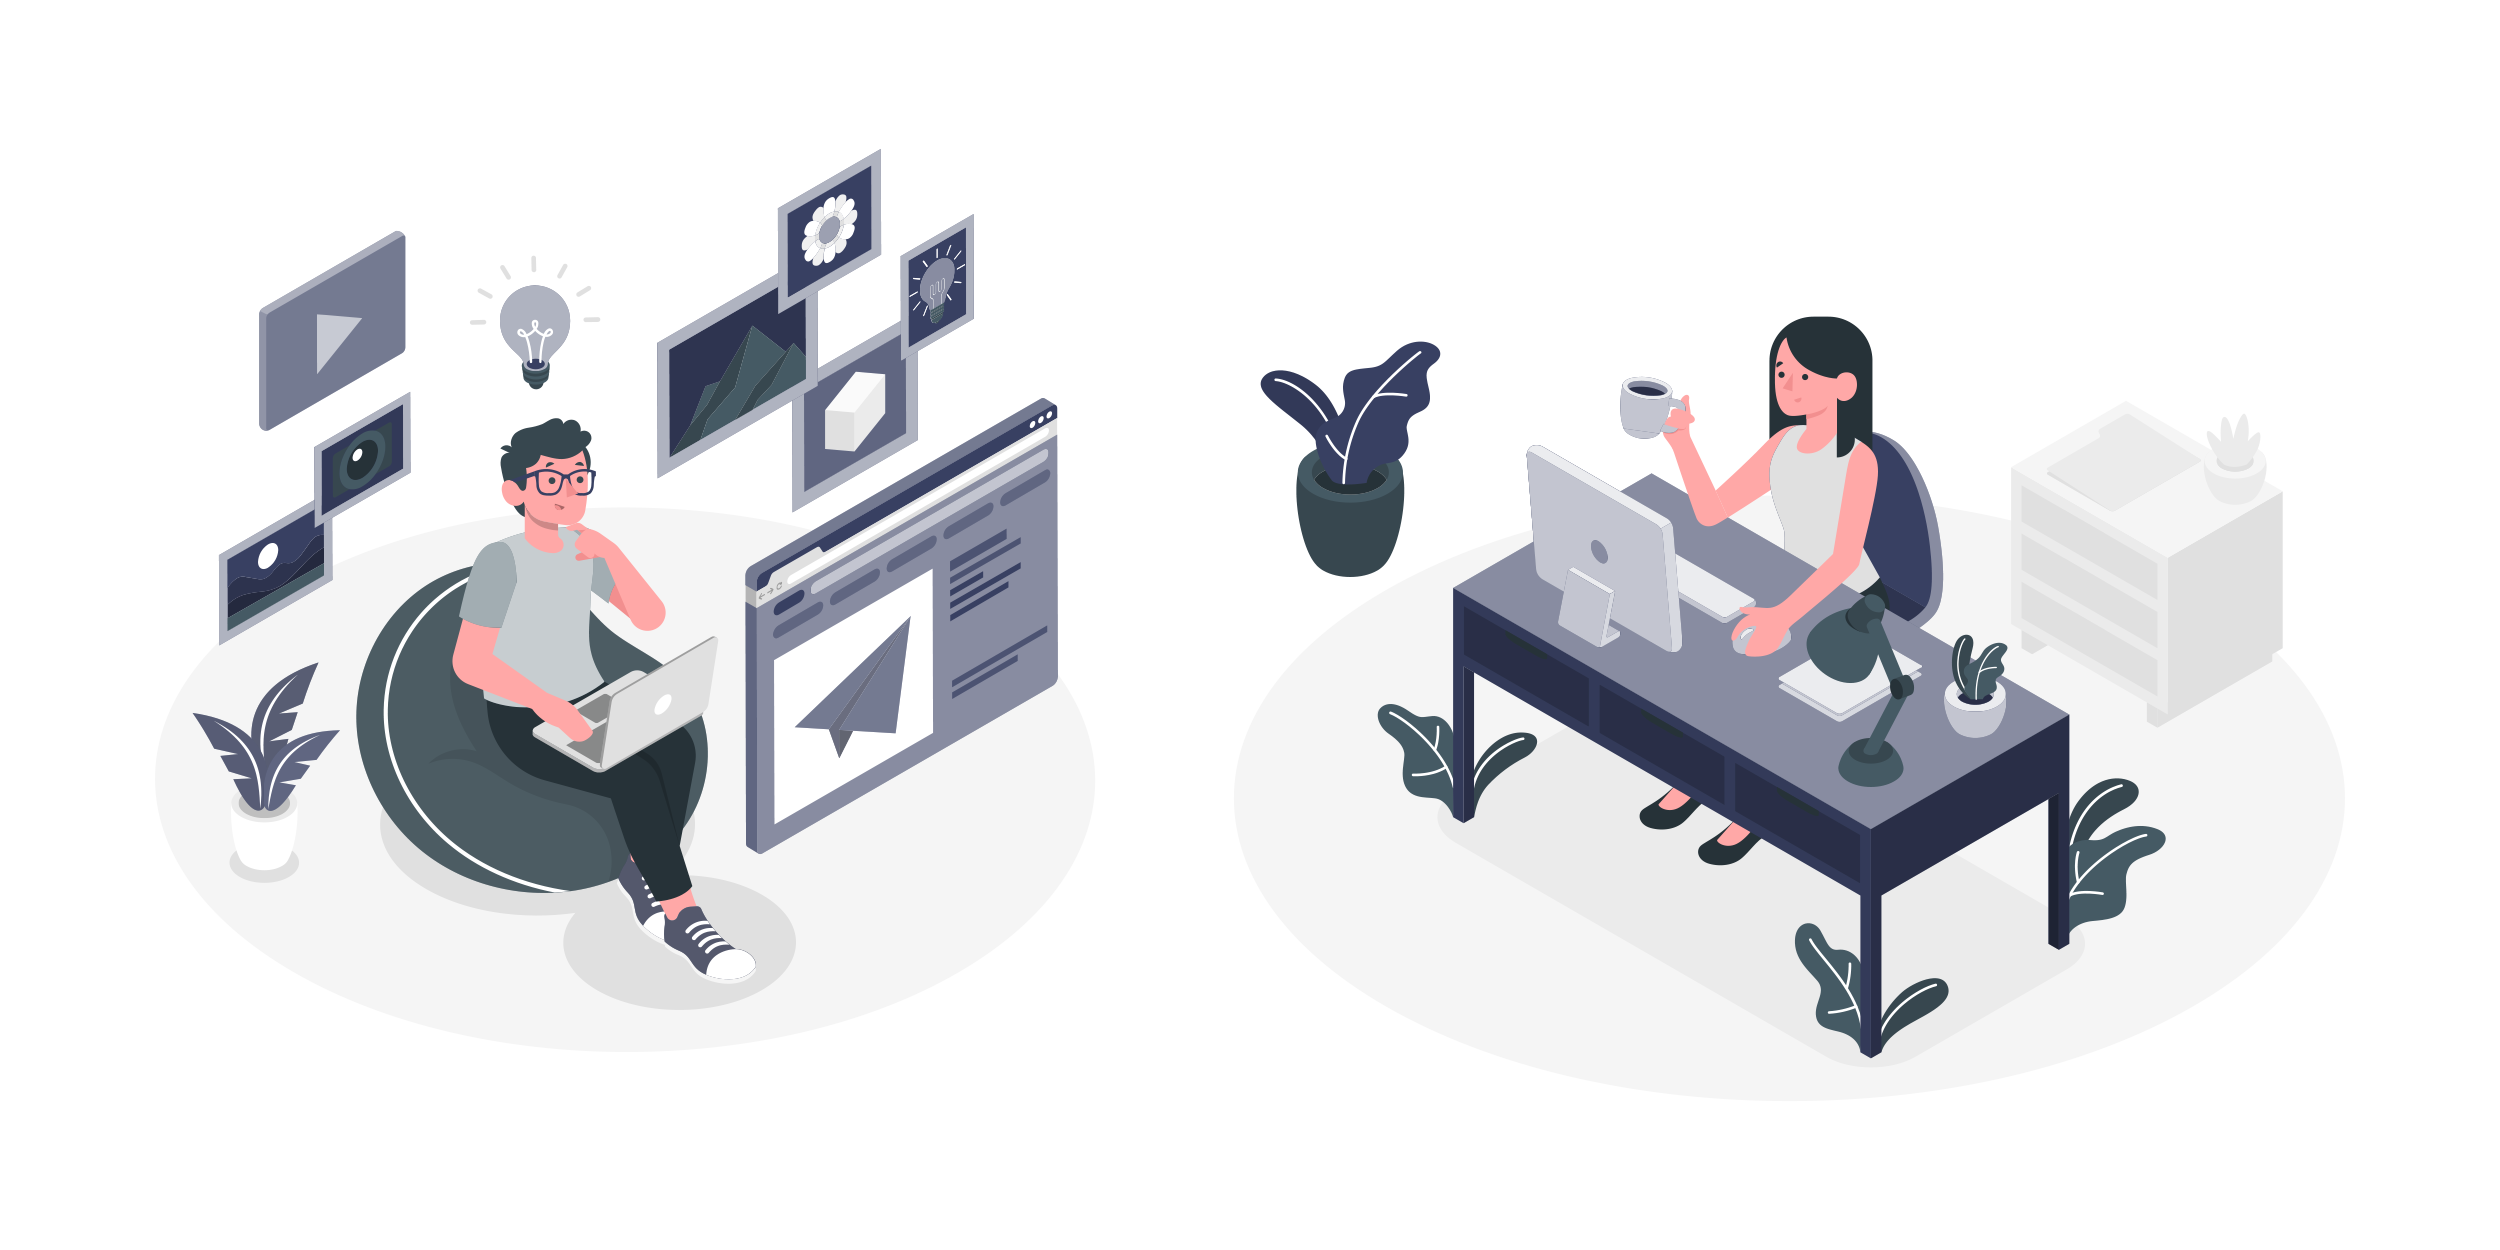 Illustration: Two people sitting at different desks. One is surrounded by notifications and updates; the other is at a casual corporate desk